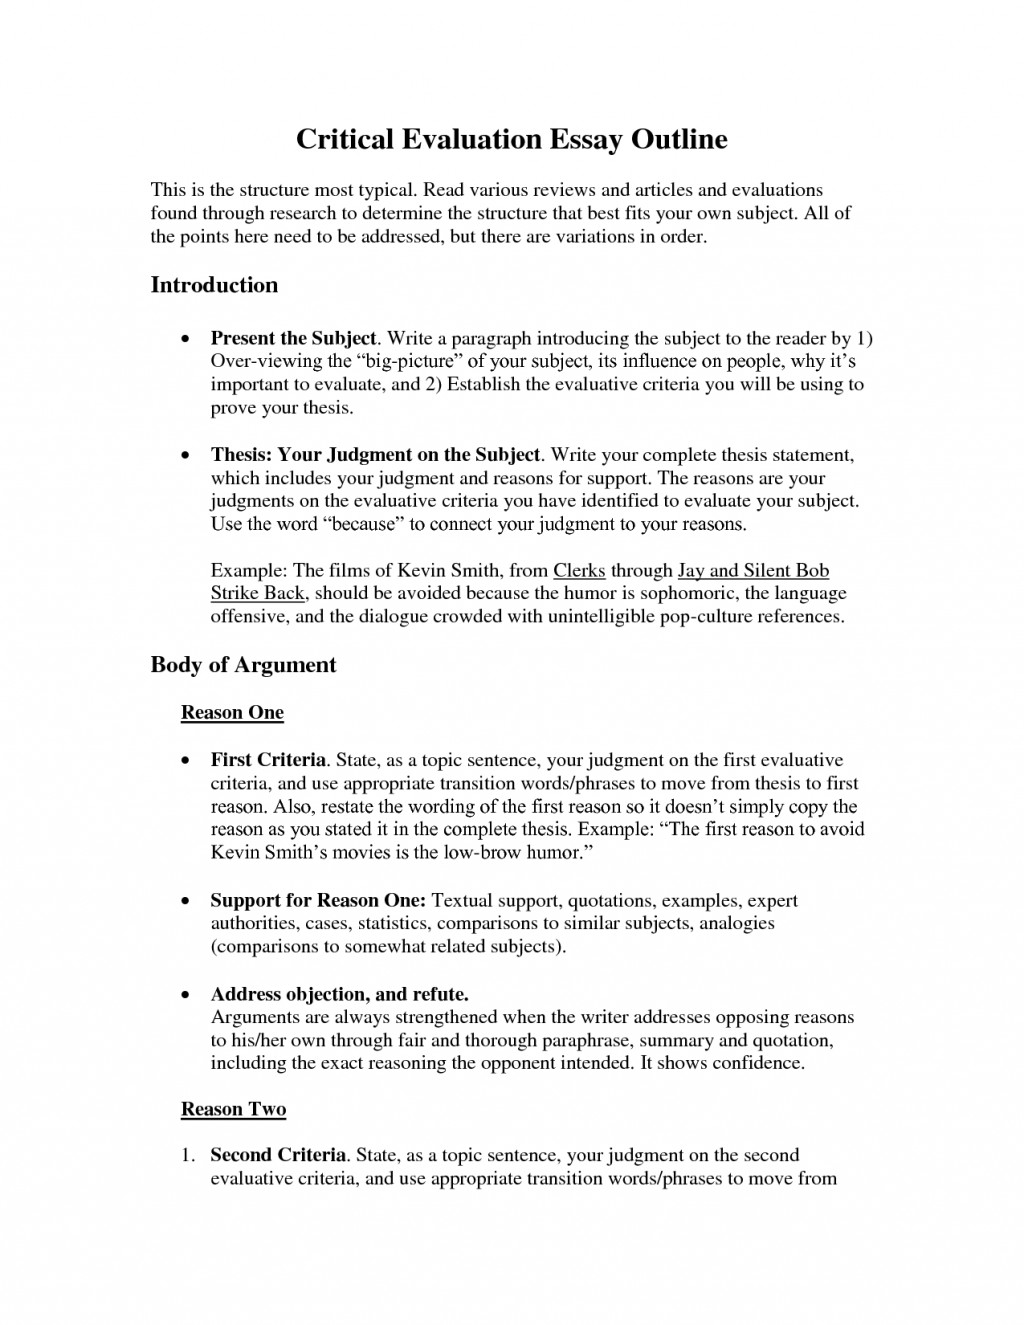 018 How To Write An Evaluation Essay Critical Example Sample L Outstanding A Self Psychology On Product Large